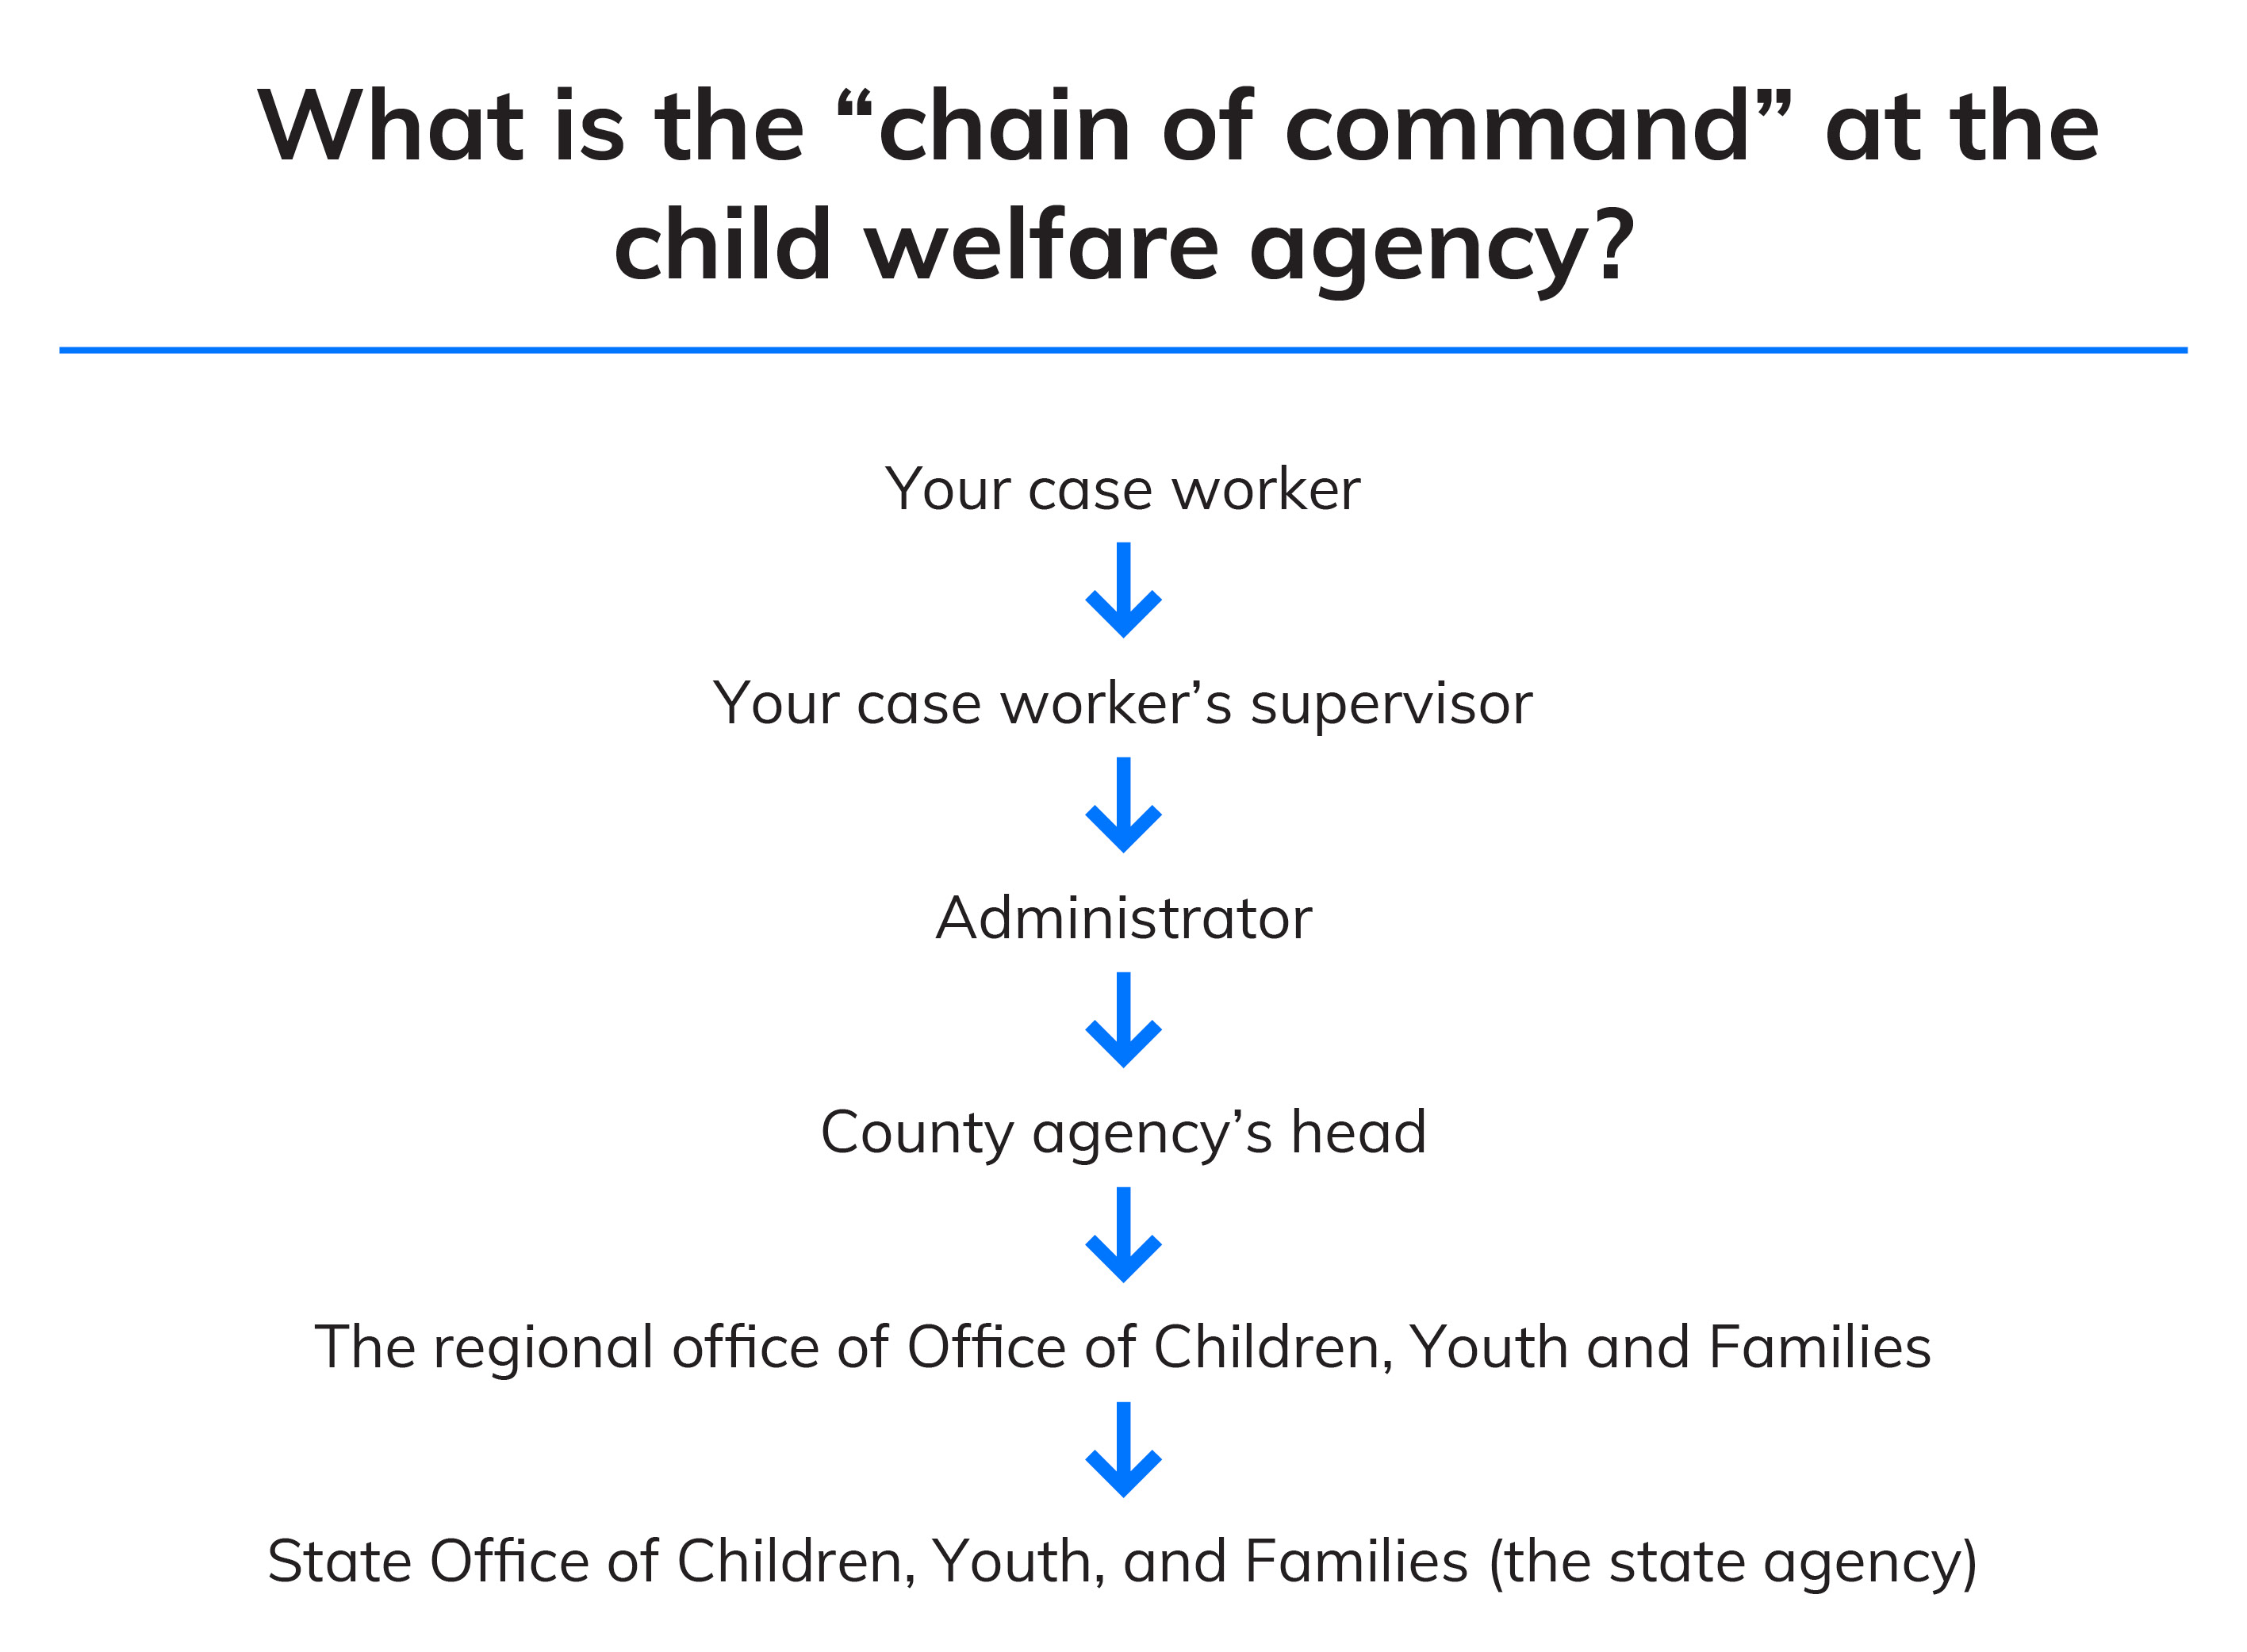 Chart showing increasing chain of command from case worker to case worker's supervisor to administrator to county agency's head to regional office of the Office of Children, Youth, and Families to State Office of the Office of Children, Youth, and Families